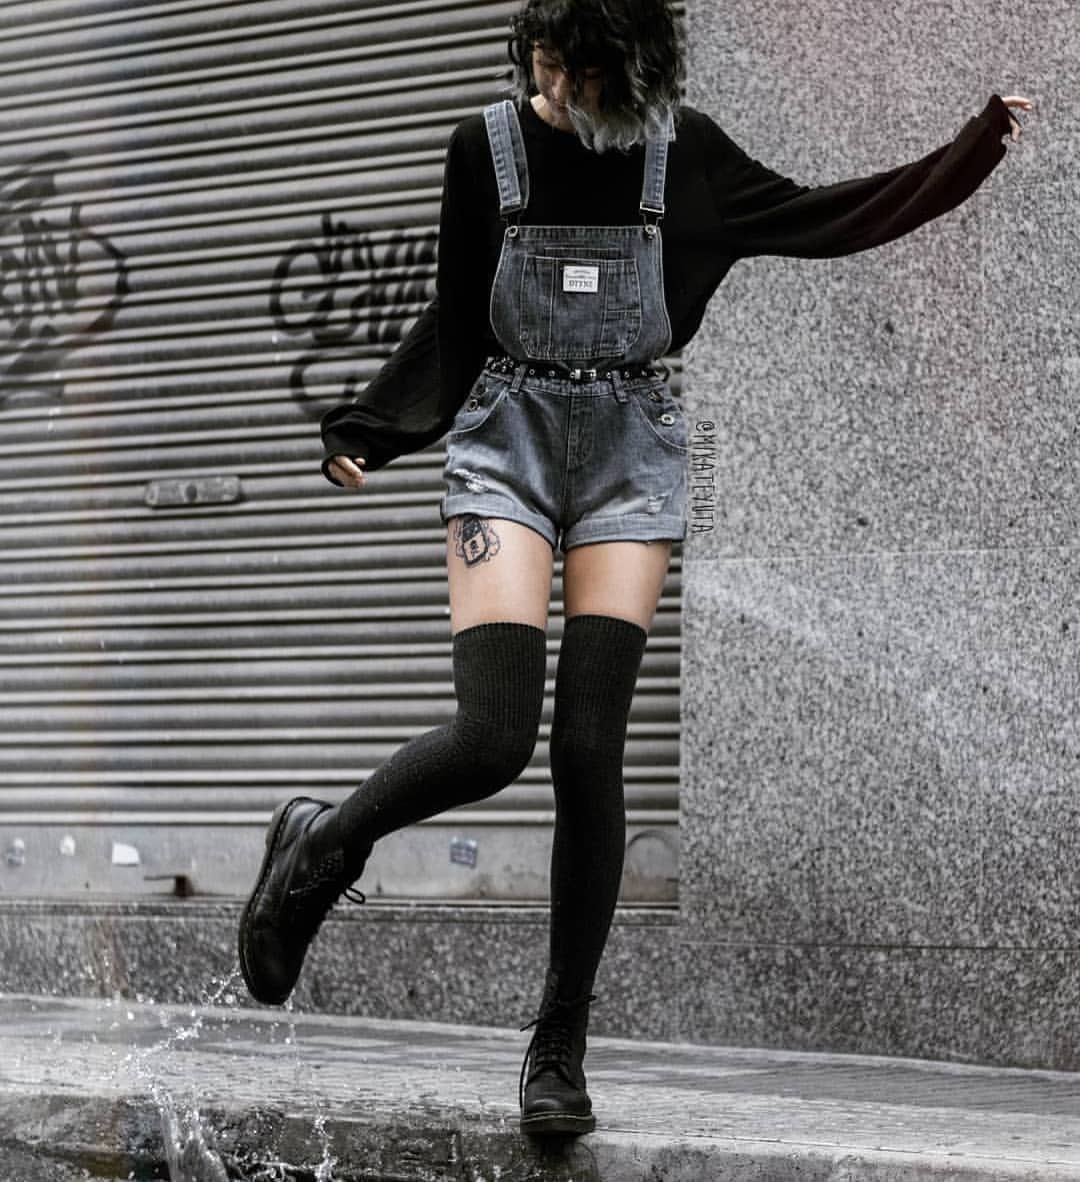 Grunge Aesthetic On Instagram Comment With Your First Letter Of Your Name Credit Mikatey Aesthetic Clothes Aesthetic Grunge Outfit Edgy Outfits